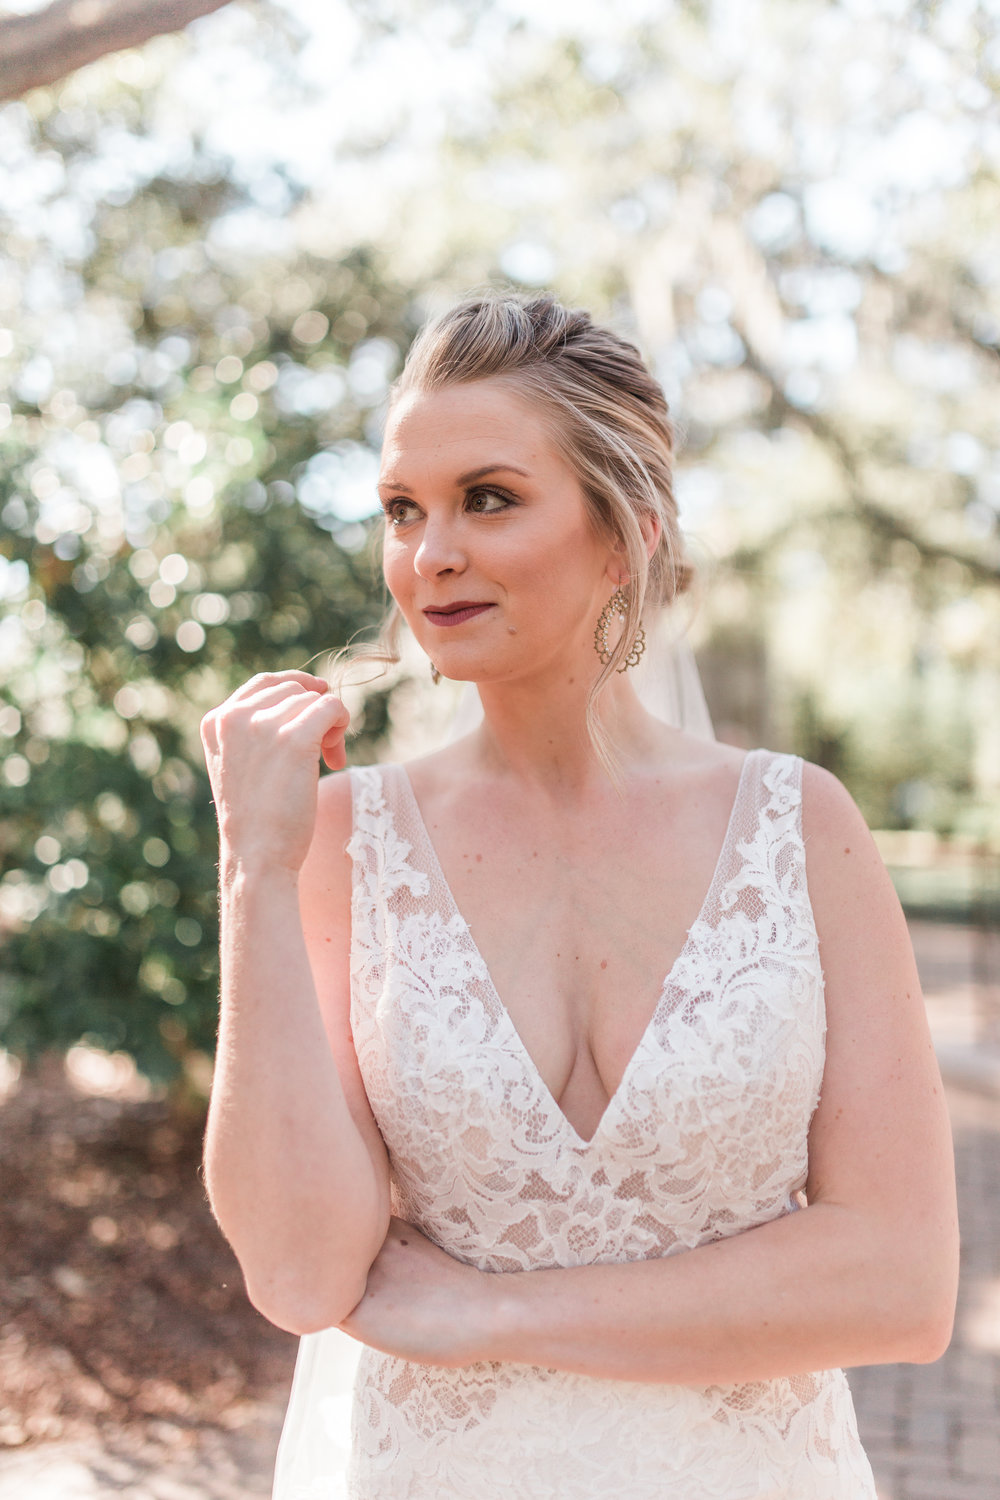 ivory-and-beau-bridal-boutique-savannah-bridal-boutique-savannah-wedding-coordinator-savannah-wedding-planner-bud-johnson-photography-jeff-bush-videography-1.jpg